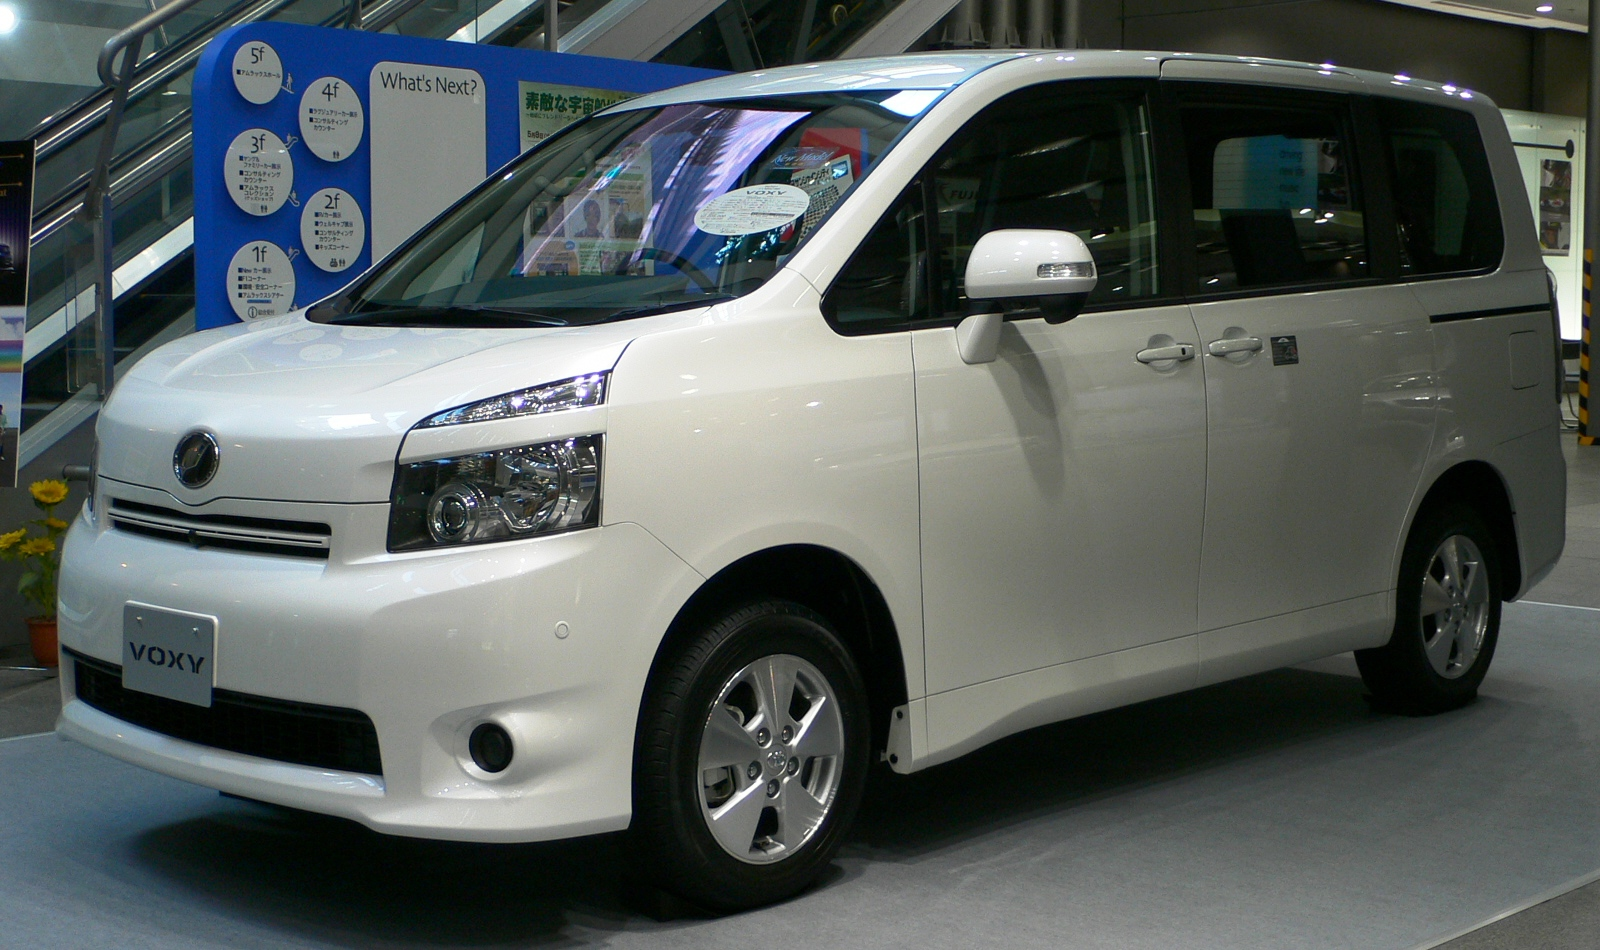 Toyota Voxy 2007 photo - 3